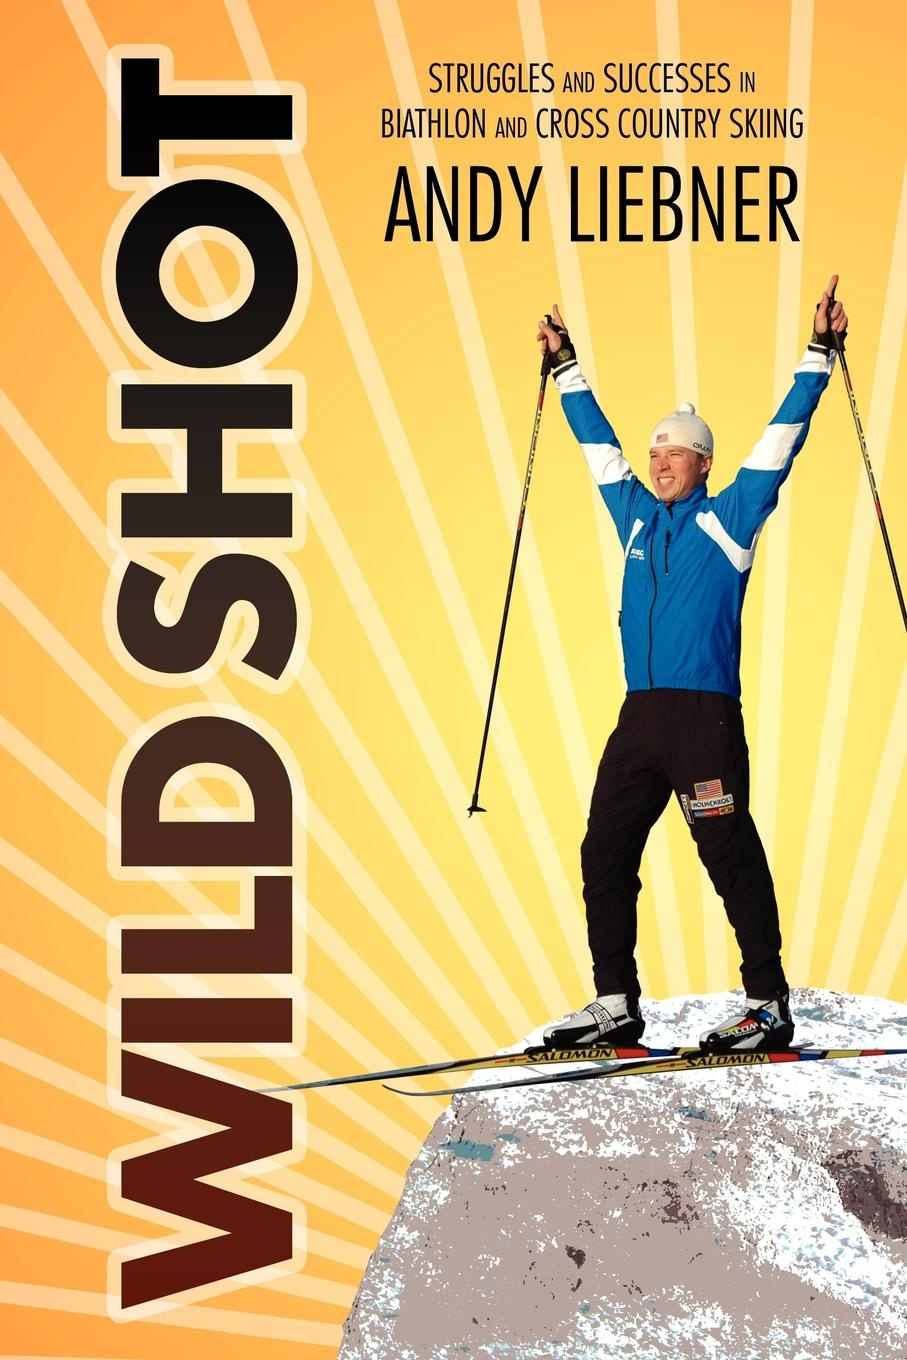 Andy Liebner Wild Shot. Struggles and Successes in Biathlon and Cross Country Skiing nauti and wild